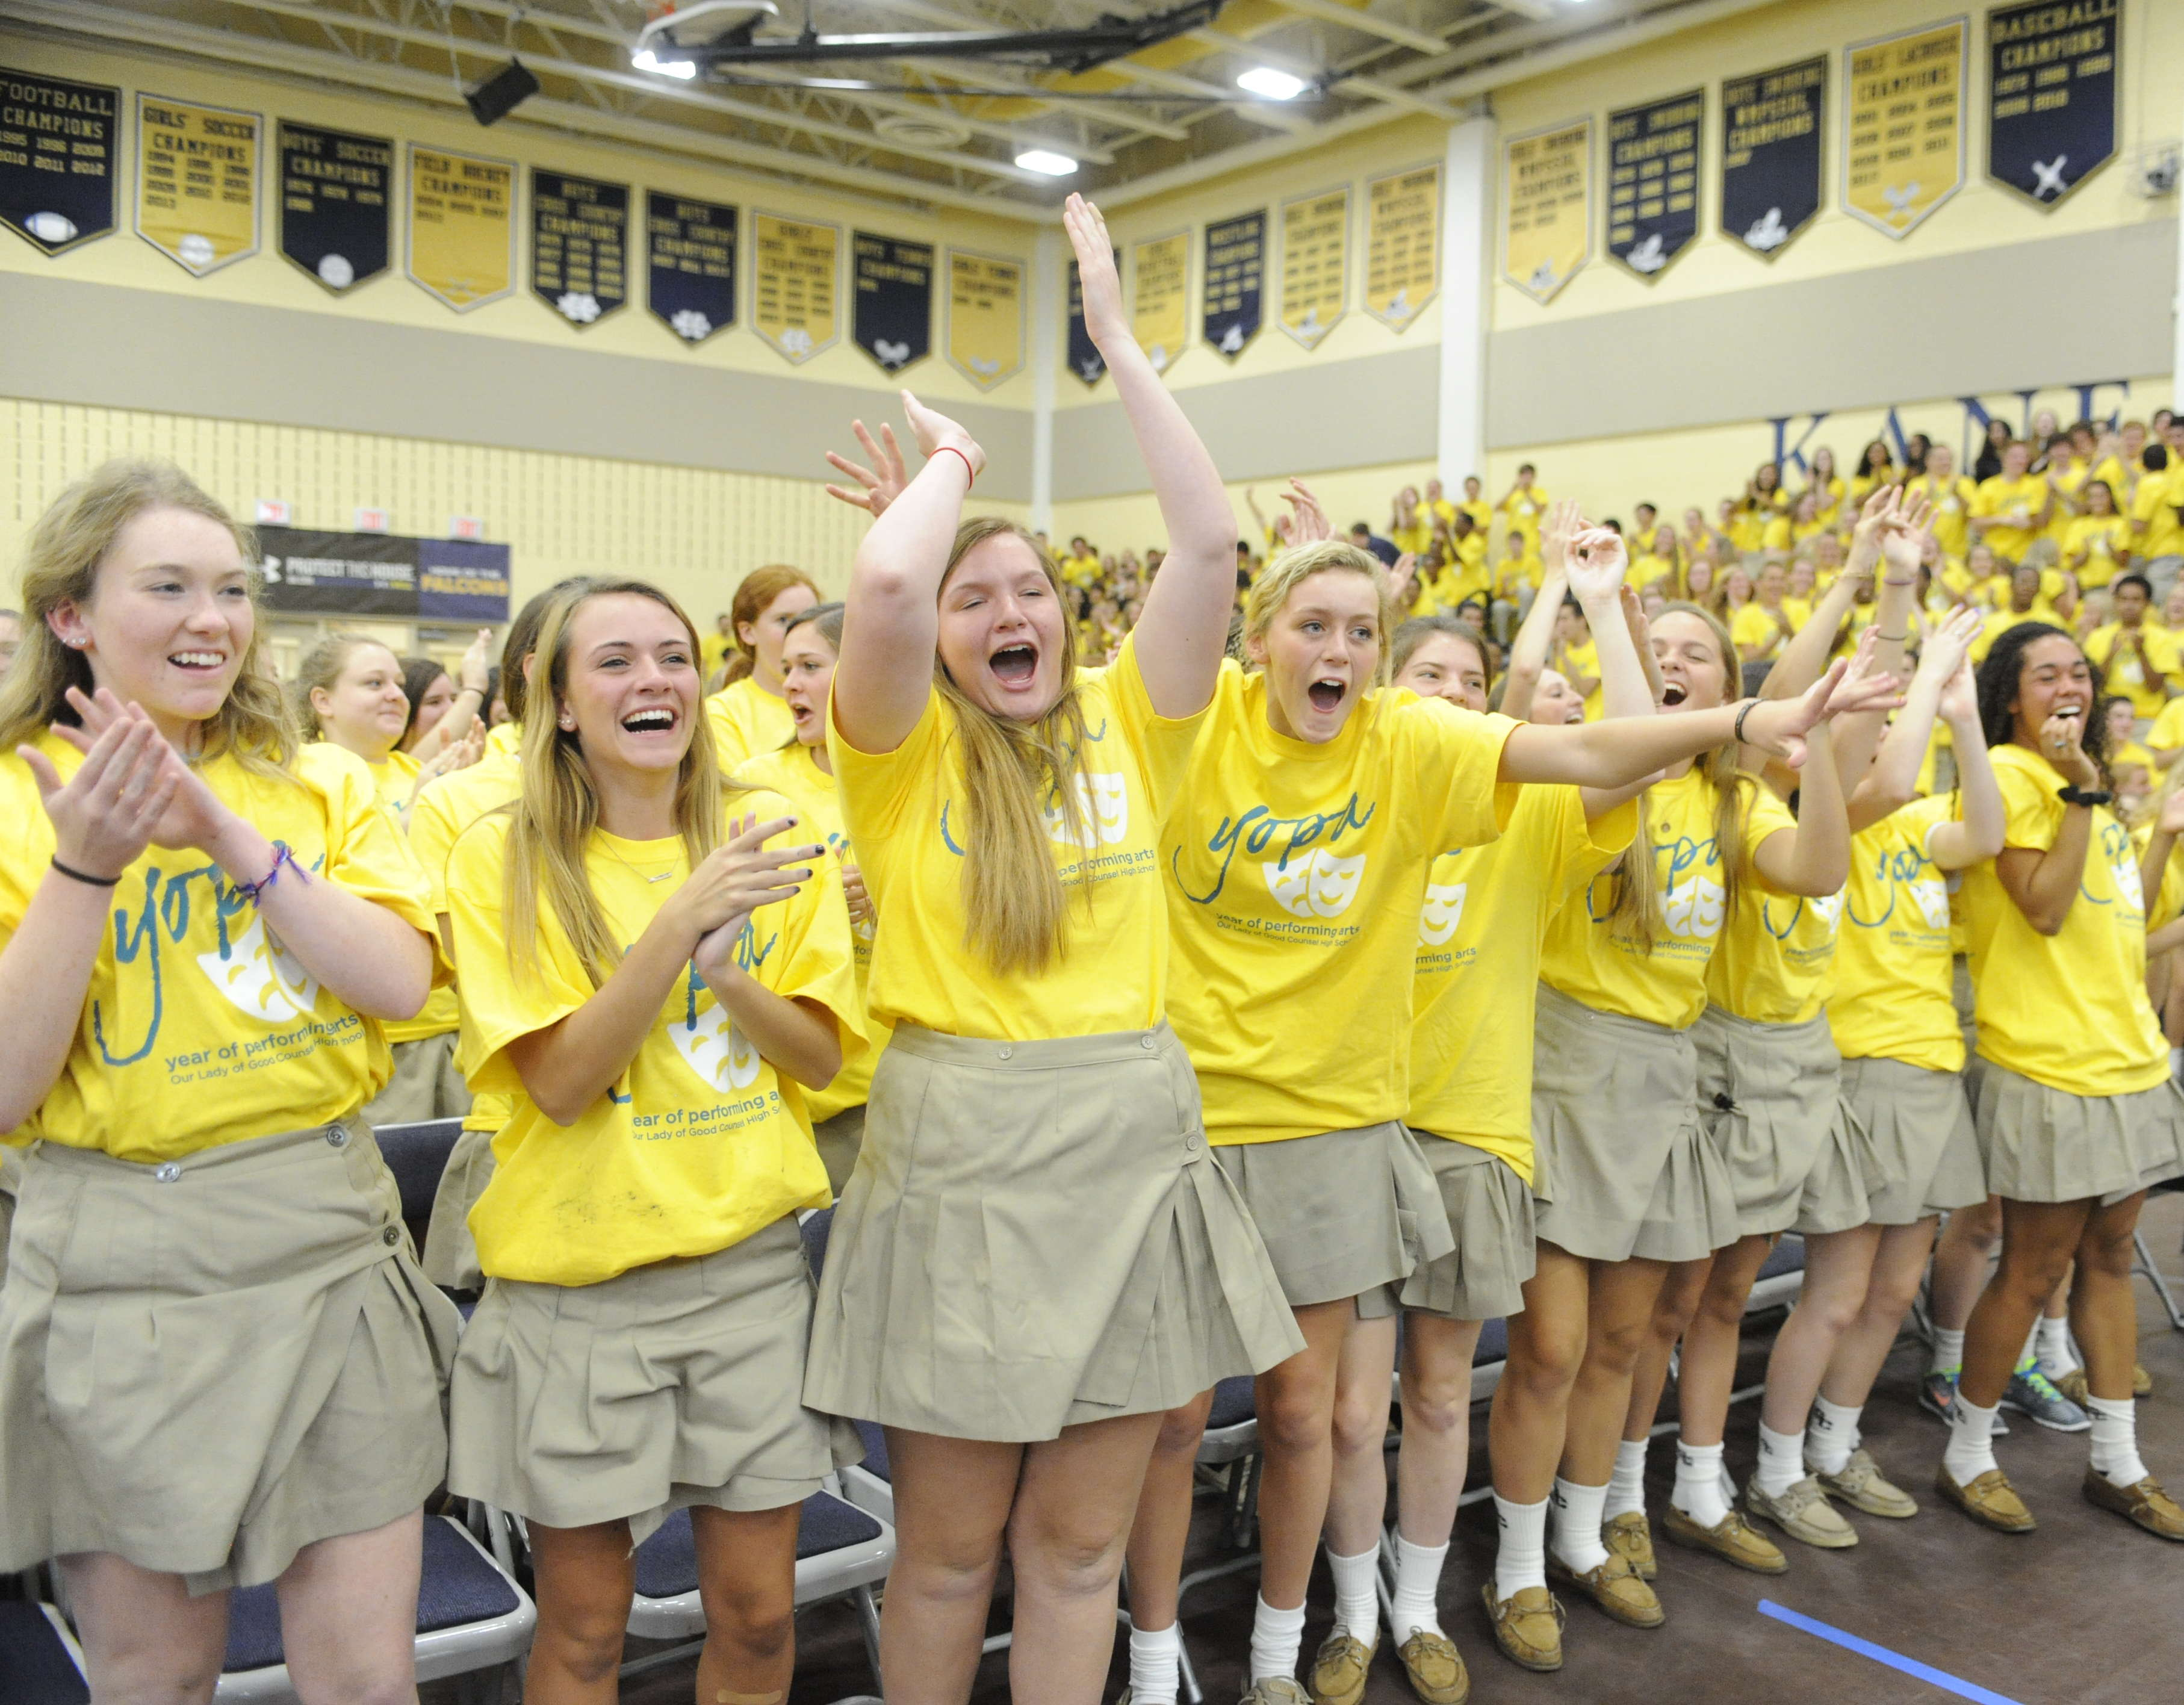 Our Lady of Good Counsel High School Rally